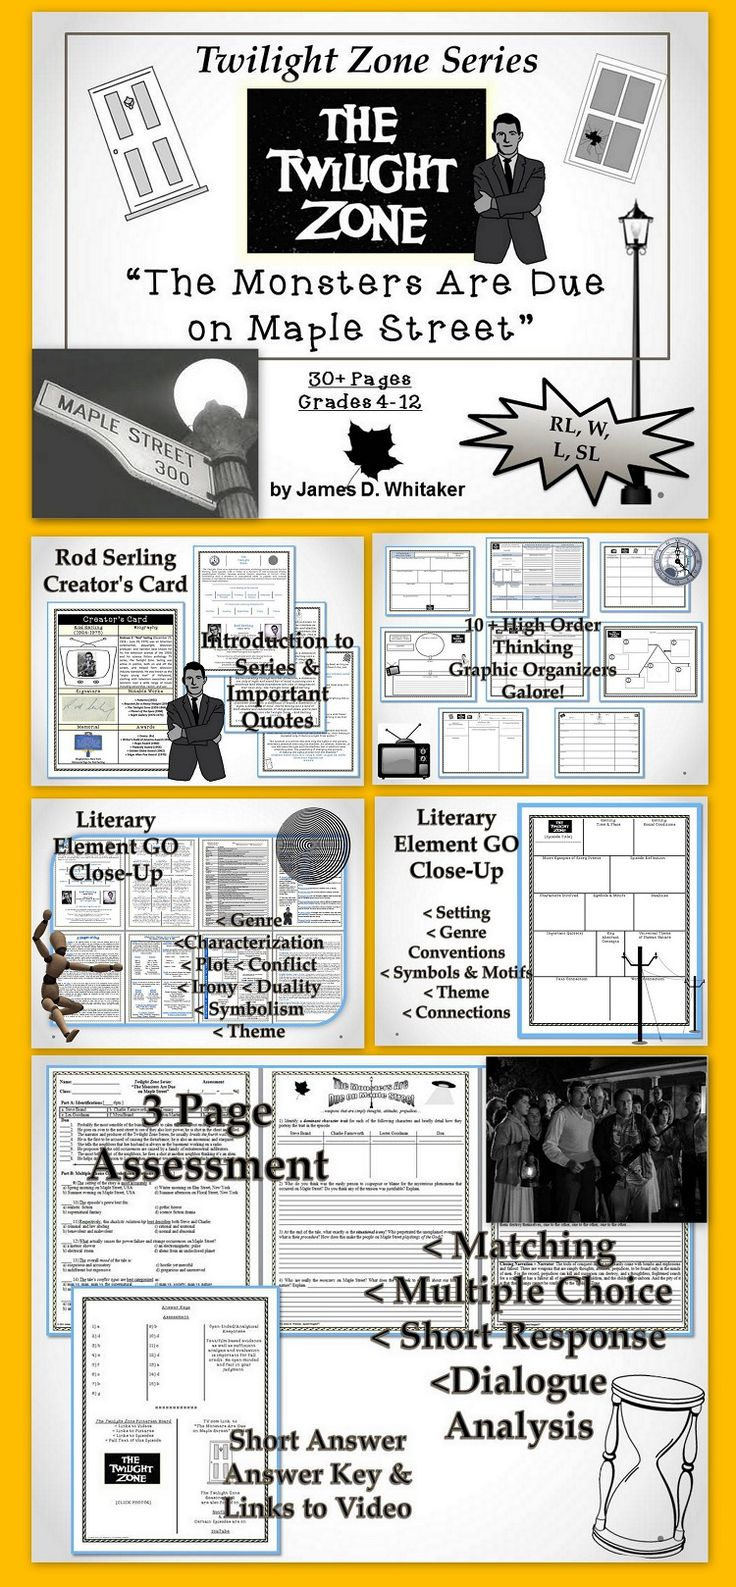 "Teach your students the Elements of Literature with the Classic Television Series--""The Twilight Zone""! Start with the definitive tale about irrational fear, scapegoating, and the hysteria of the mob mentality--""The Monsters Are Due on Maple Street""! 30+ Pages of Common Core Activities!"